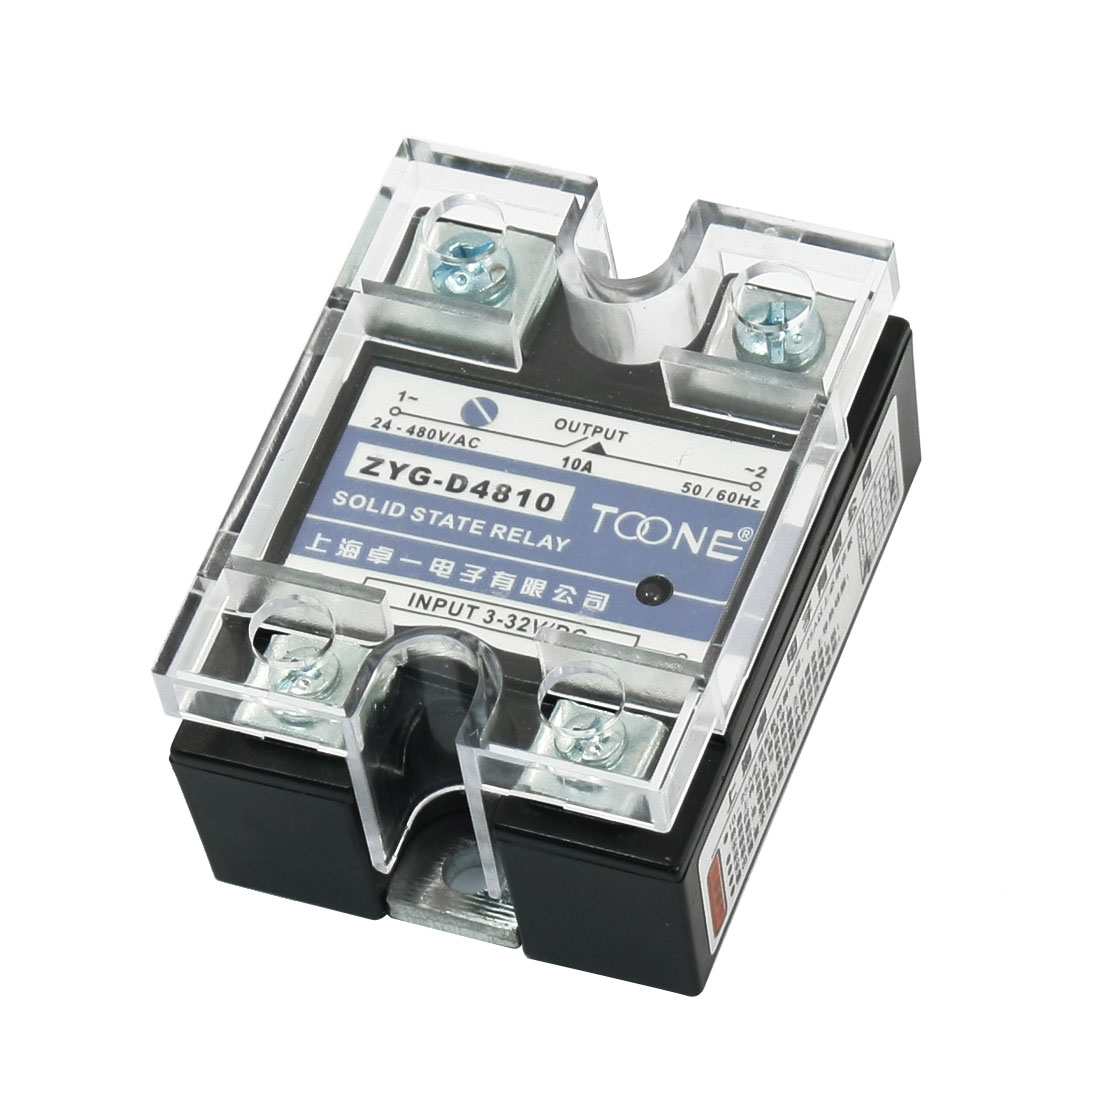 ZYG-D4810 DC 3-32V to AC 24-480V 10A 4 Screw Terminal Rectangle Base Single Phase Solid State Relay w Clear Cover